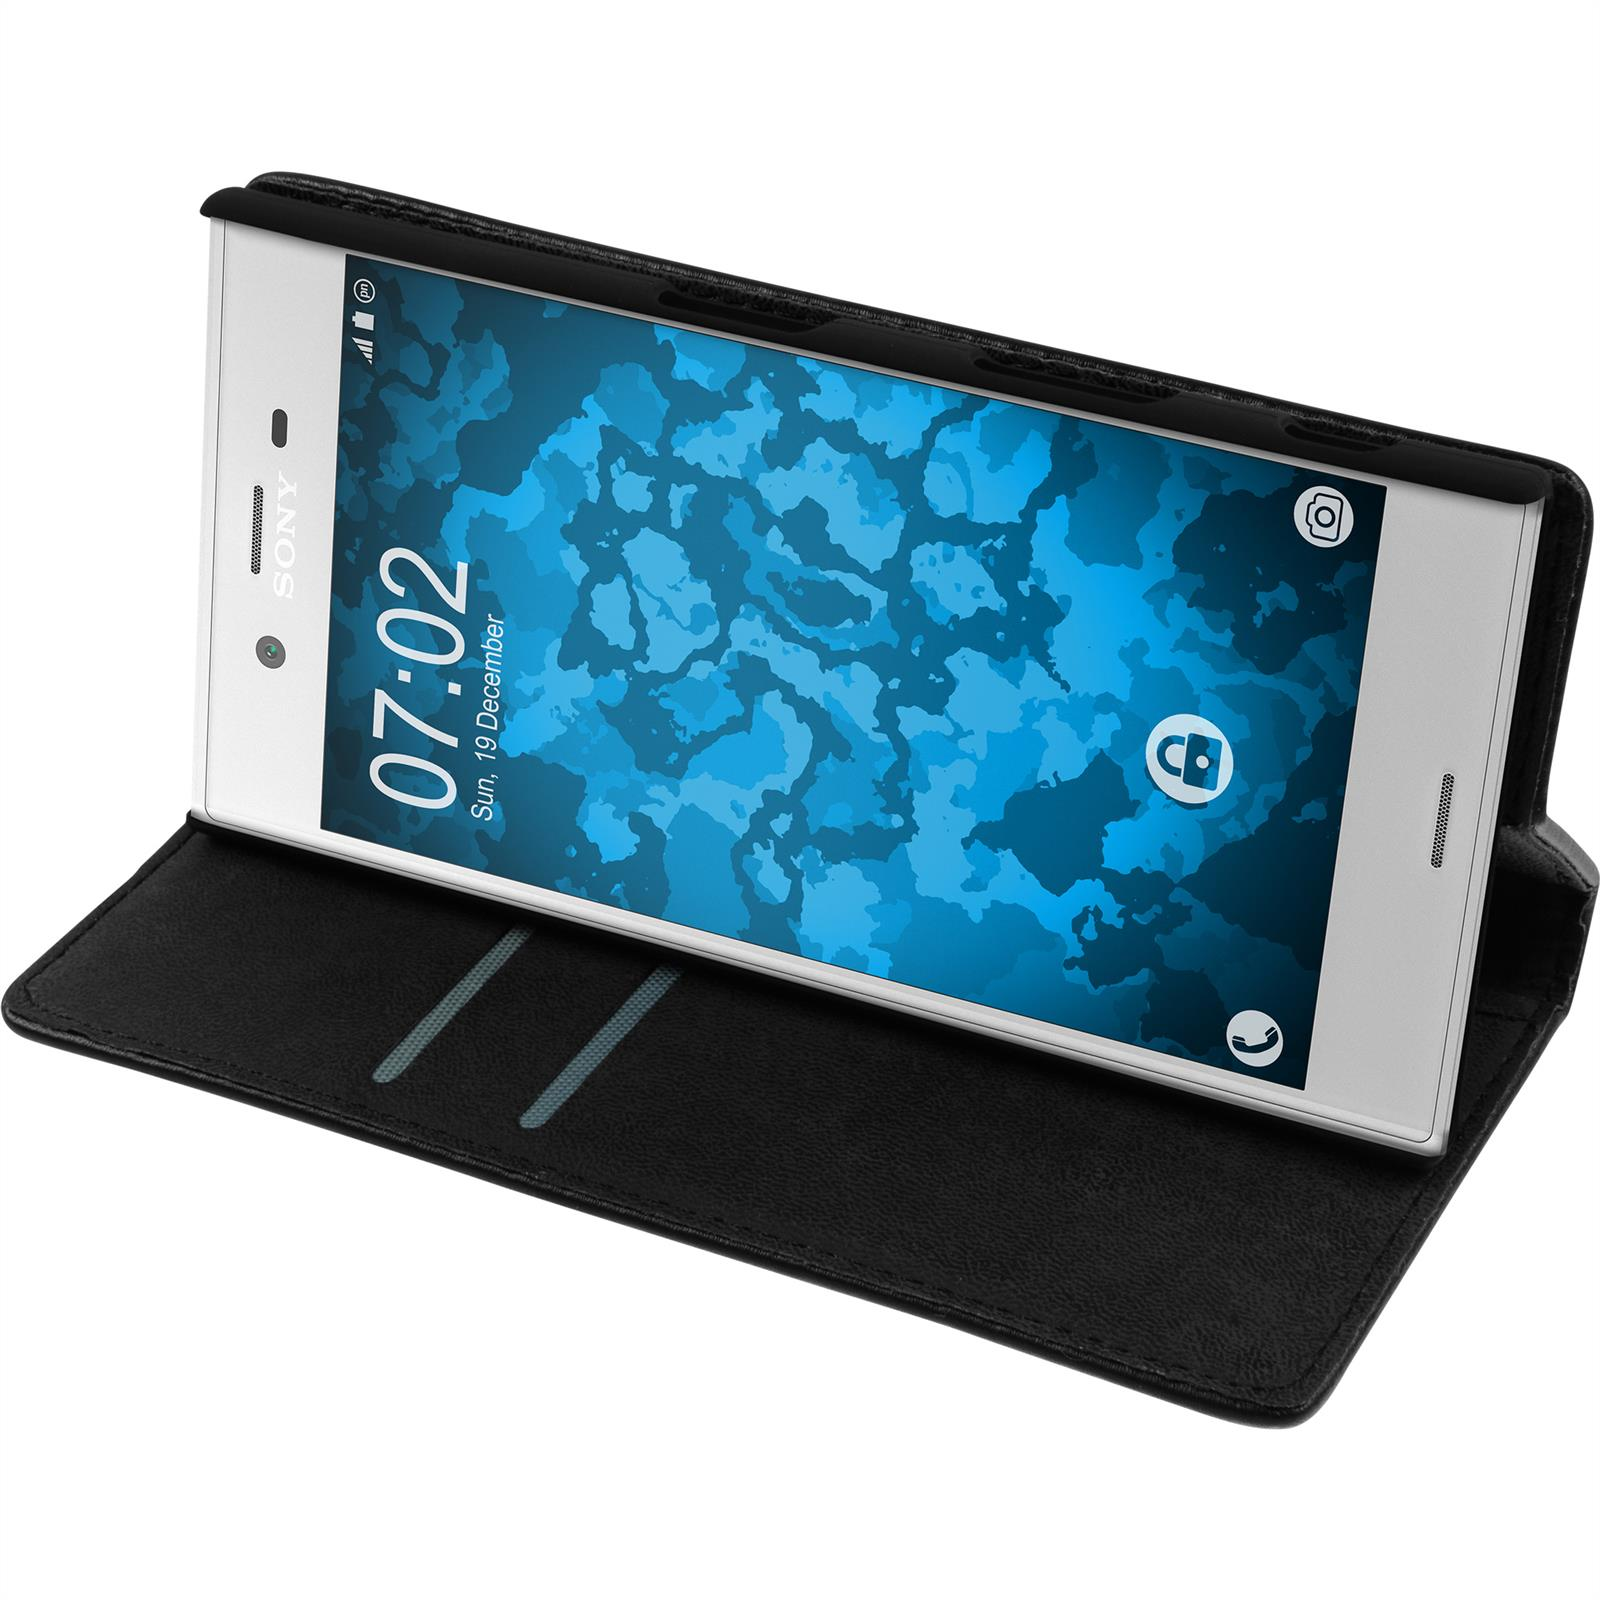 Artificial-Leather-Case-for-Sony-Xperia-XZ-Bookstyle-protective-foils